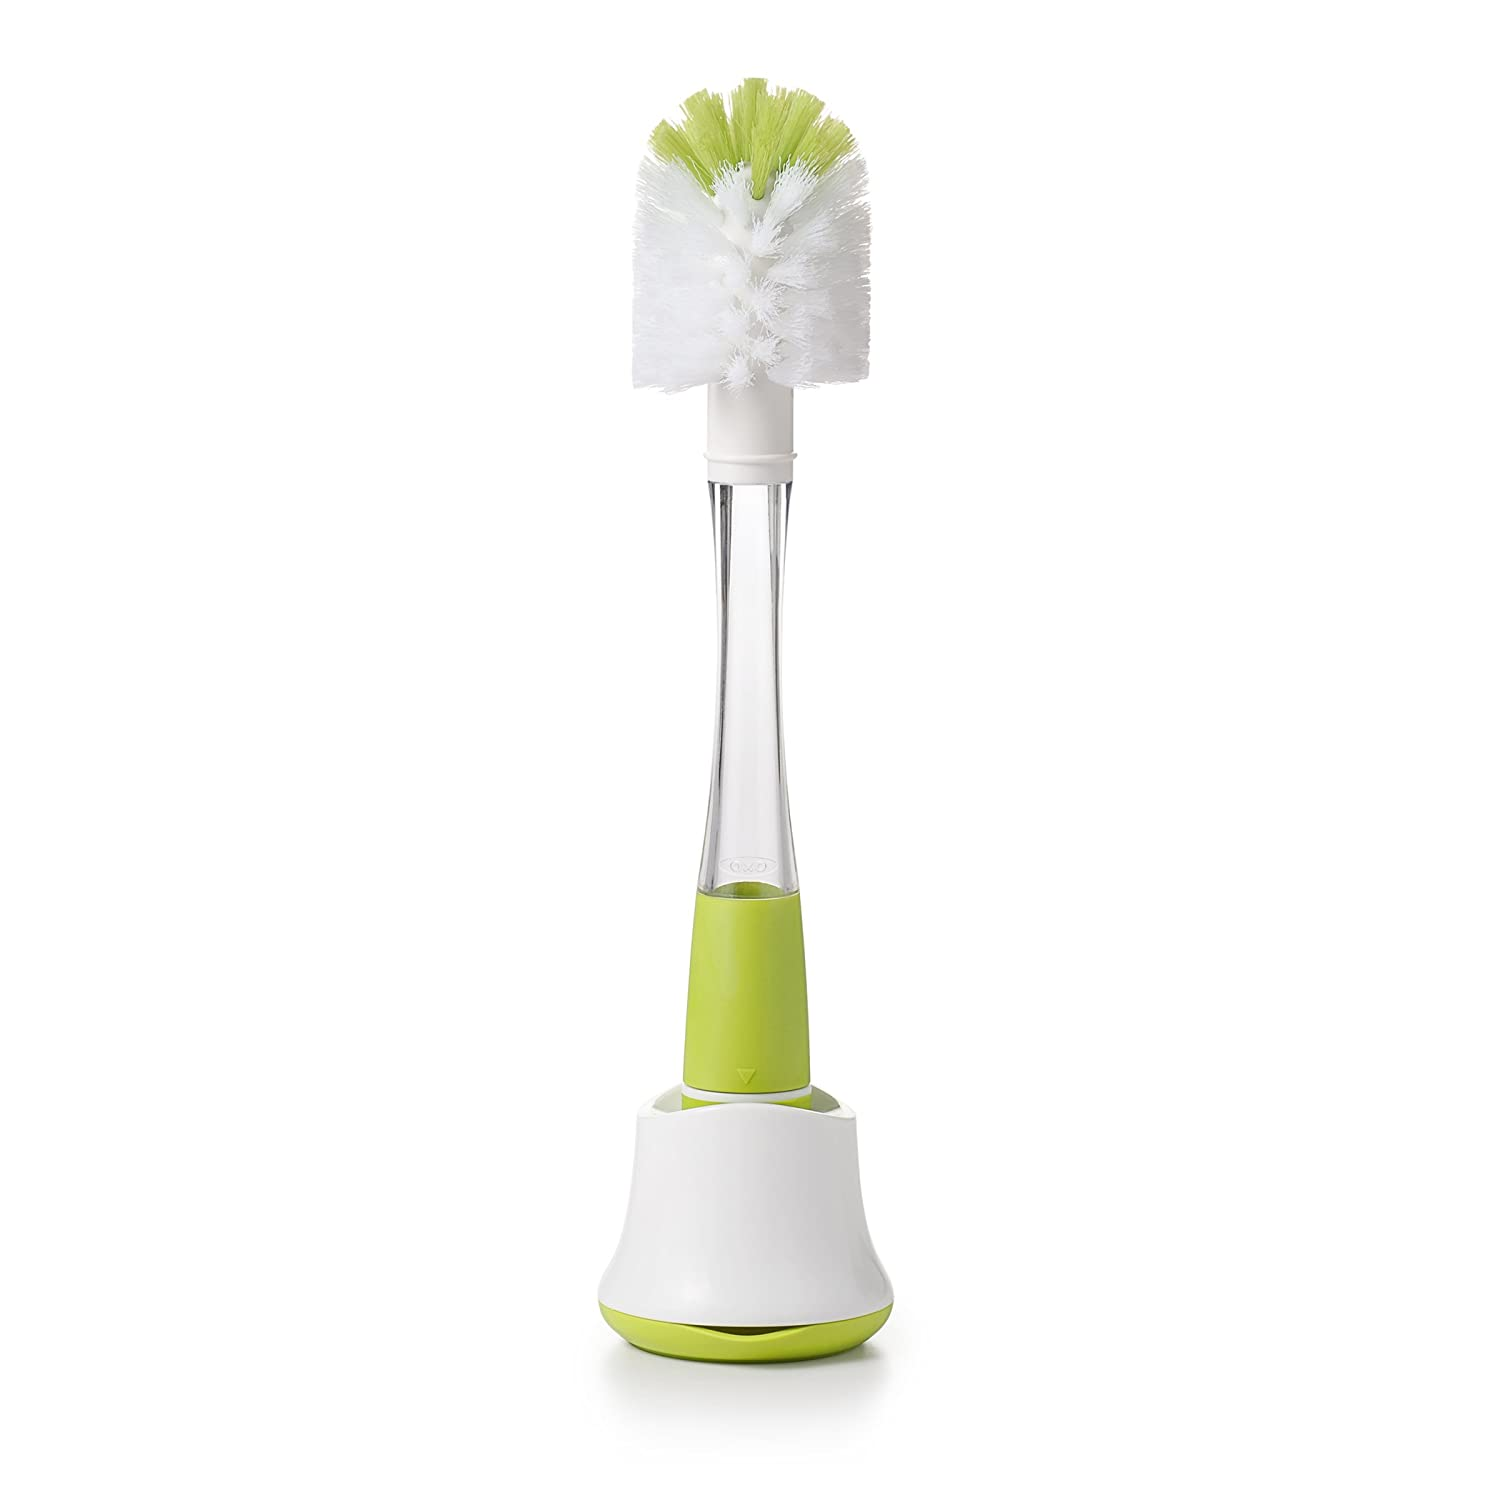 Top 9 Best Baby Bottle Brushes For Your Angel Hygiene 2020 2